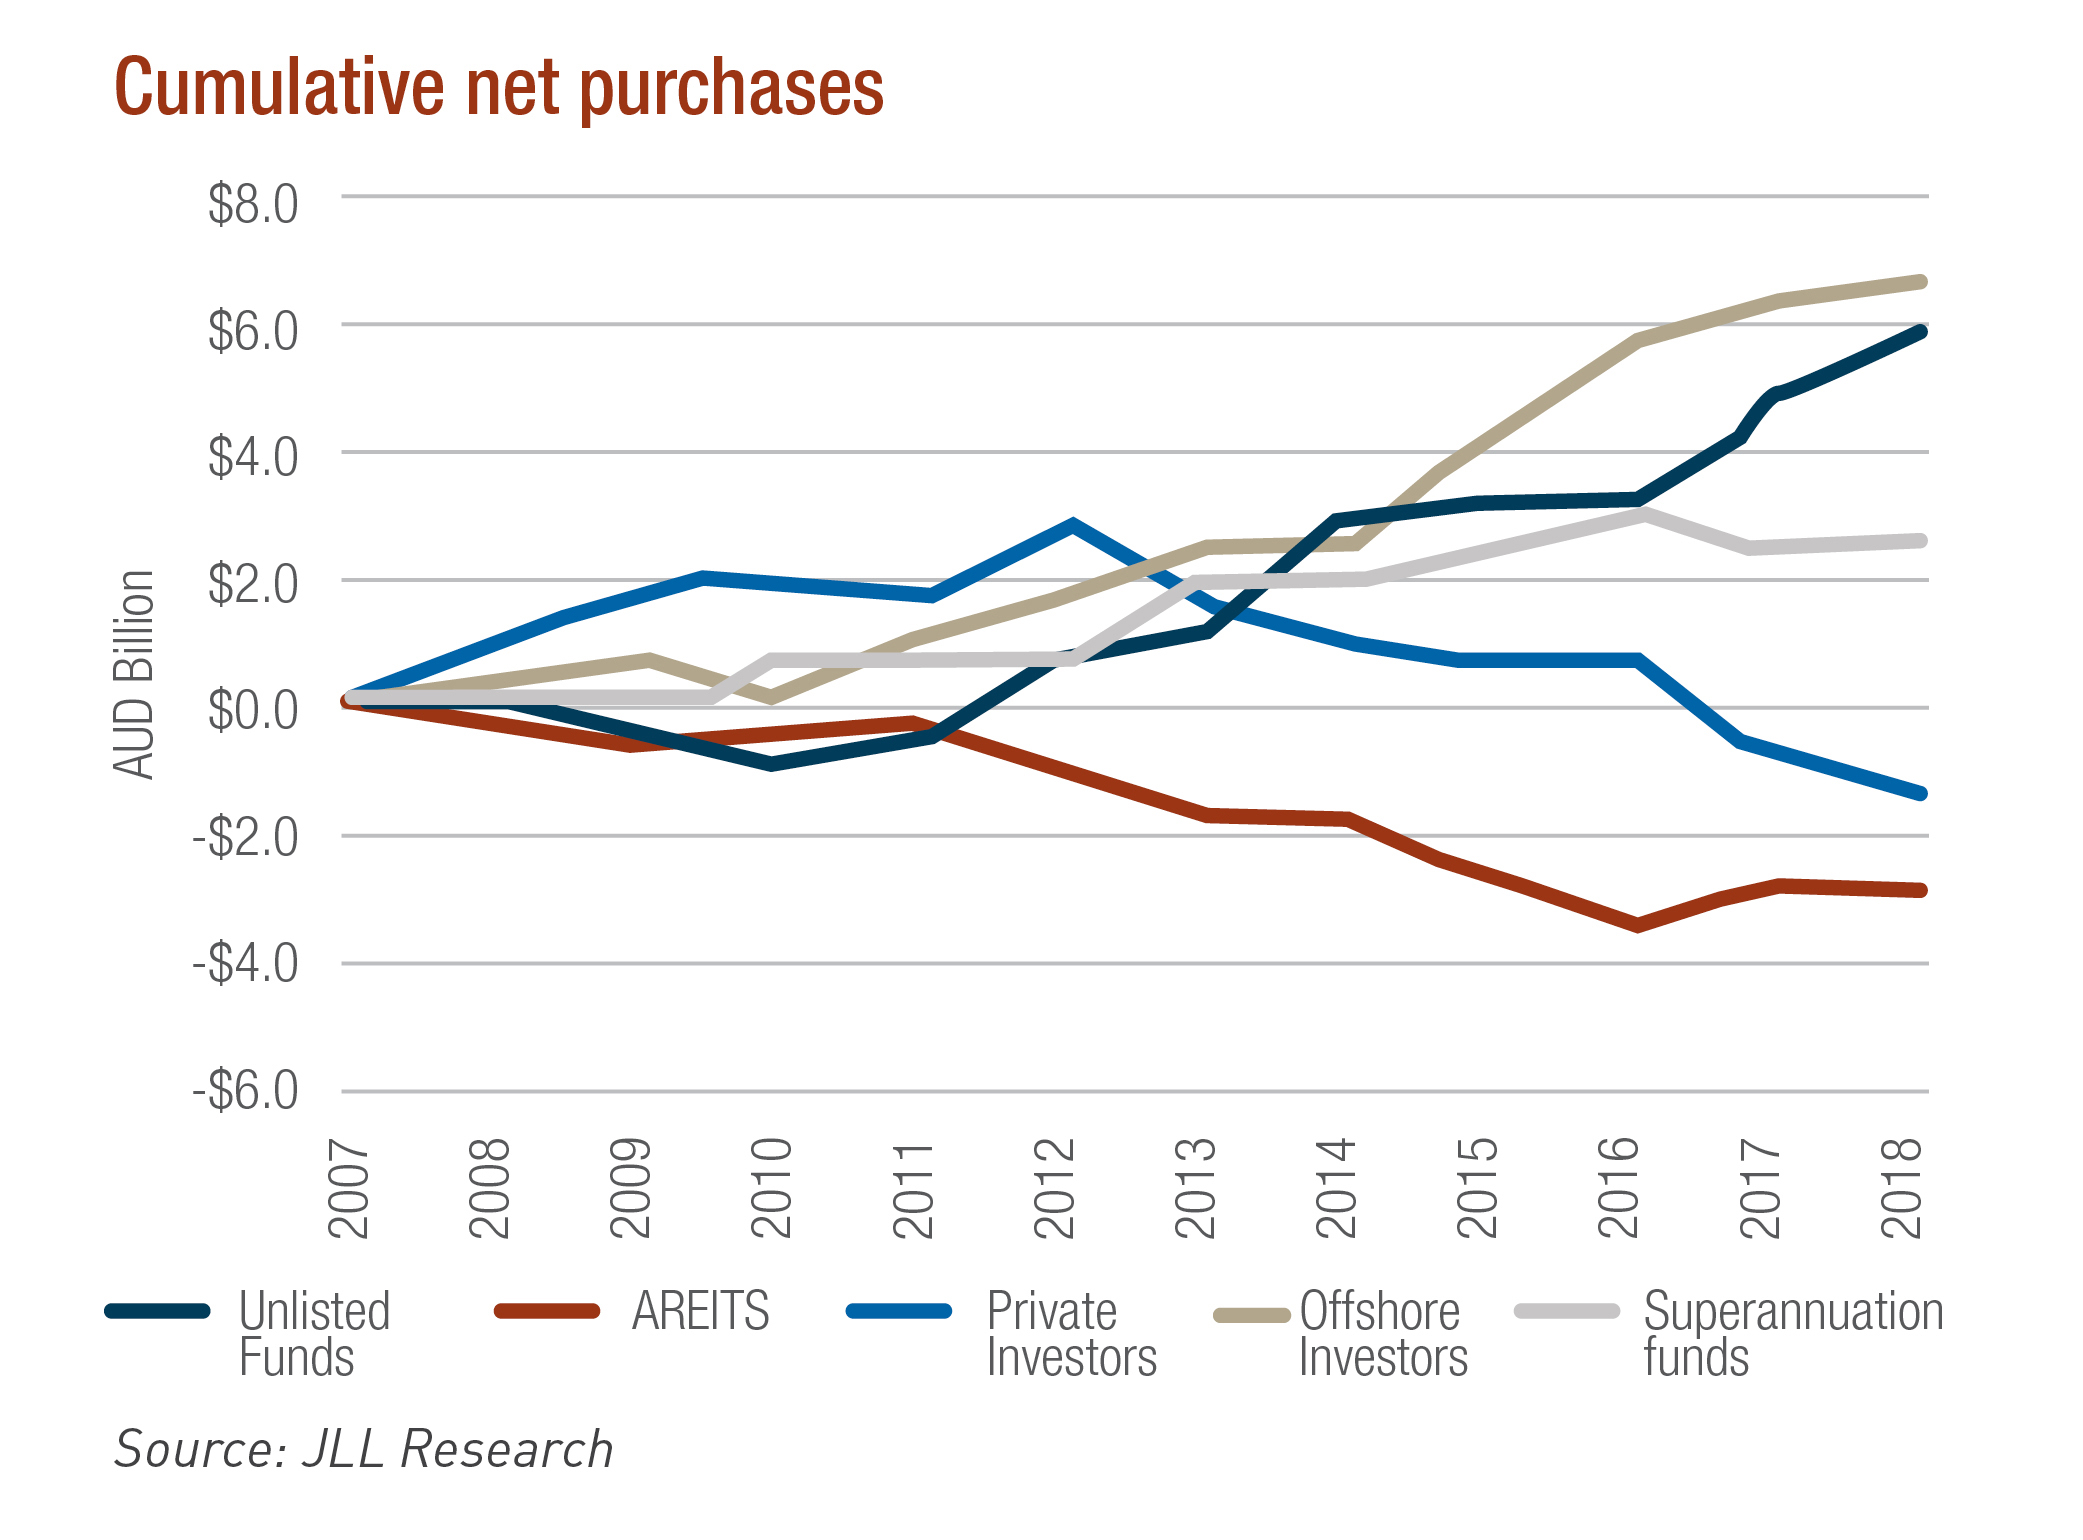 Net purchases